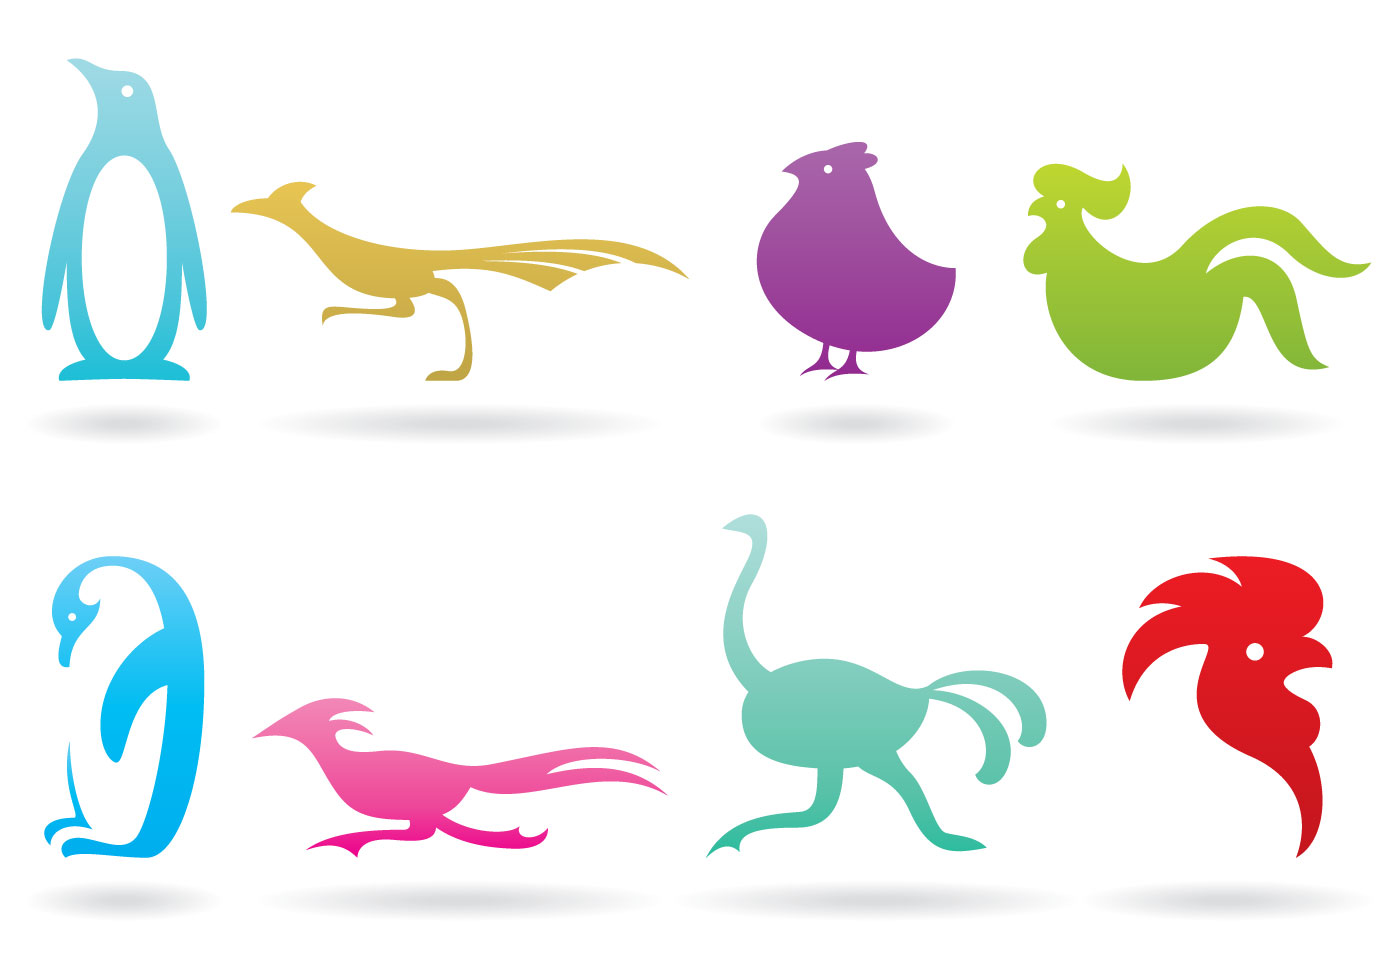 ... Bird Logos - Download Free Vector Art, Stock Graphics & Images